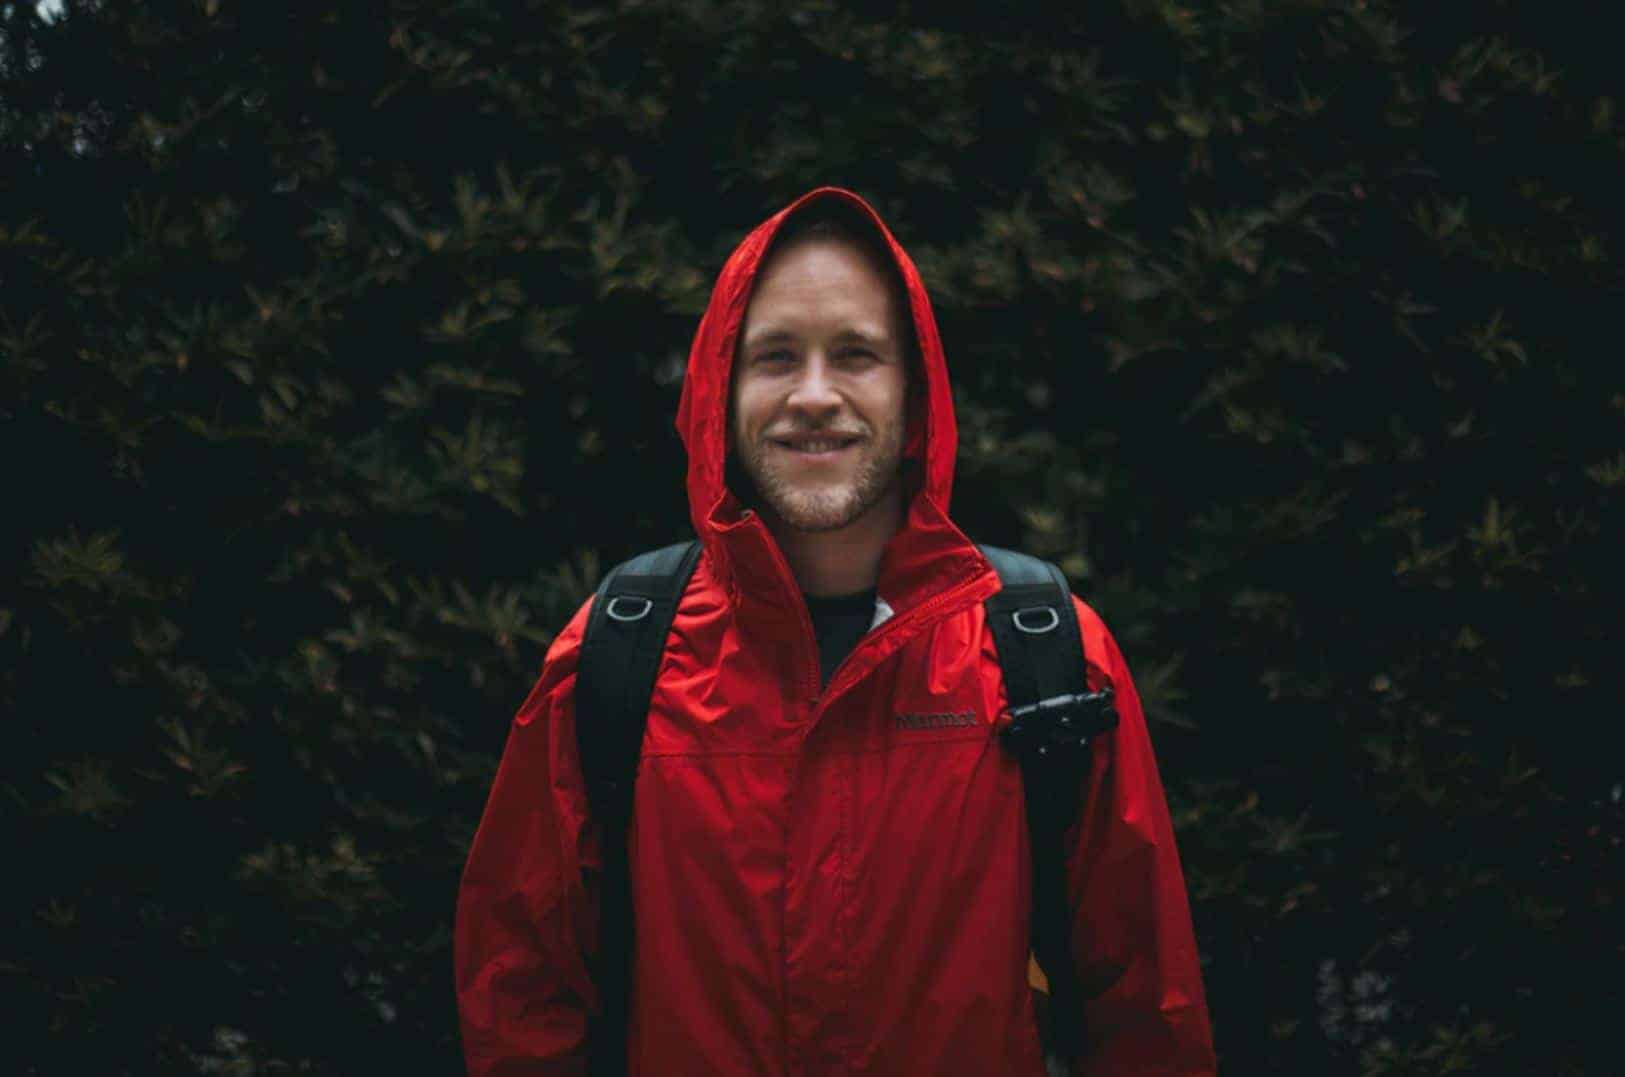 Man standing in red rain jacket on the South Downs Way